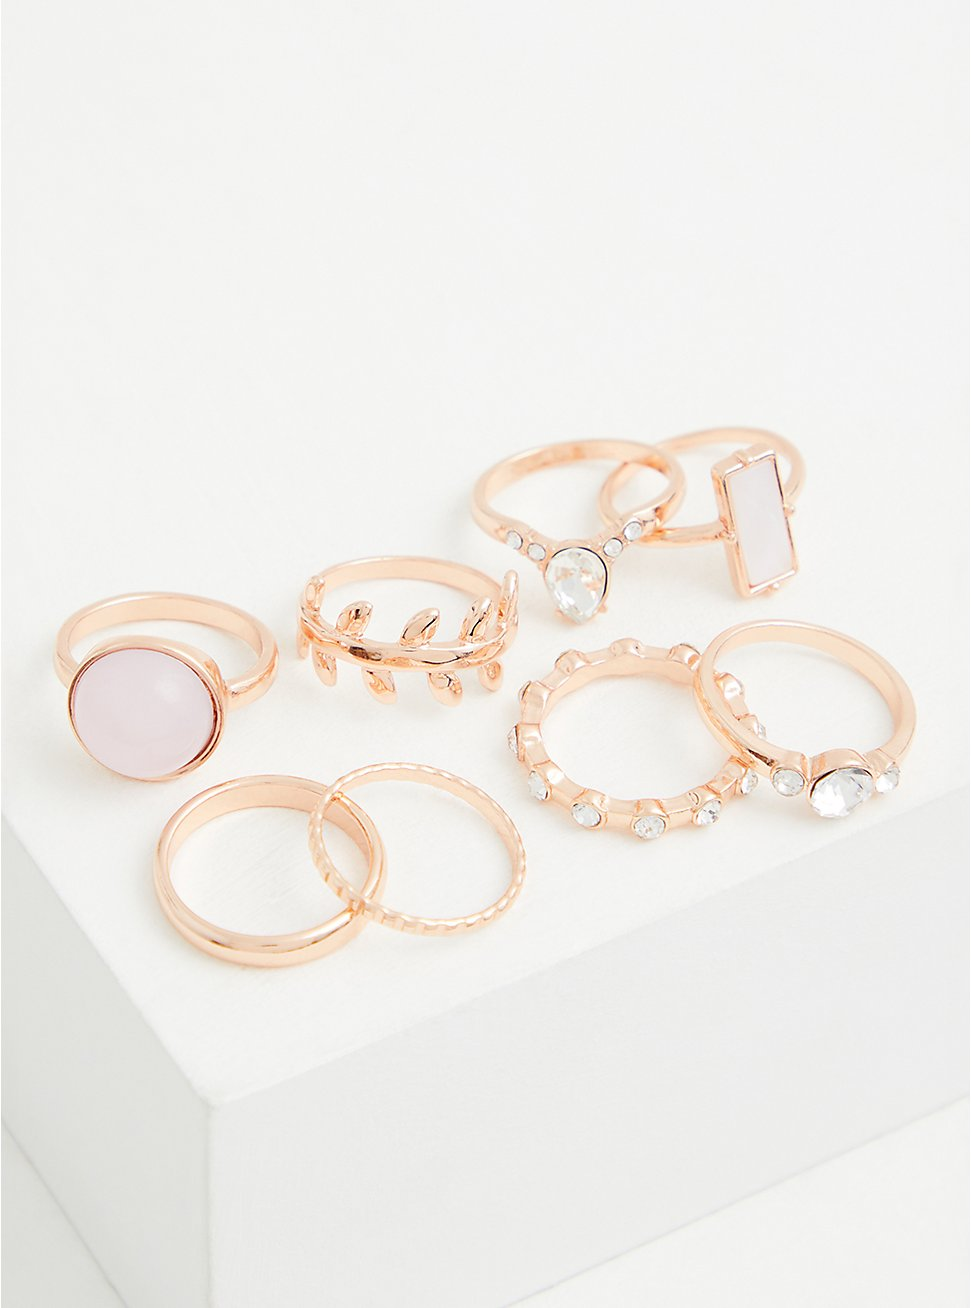 Gold-Tone Mauve Stone Ring Set - Set of 8, GOLD, hi-res